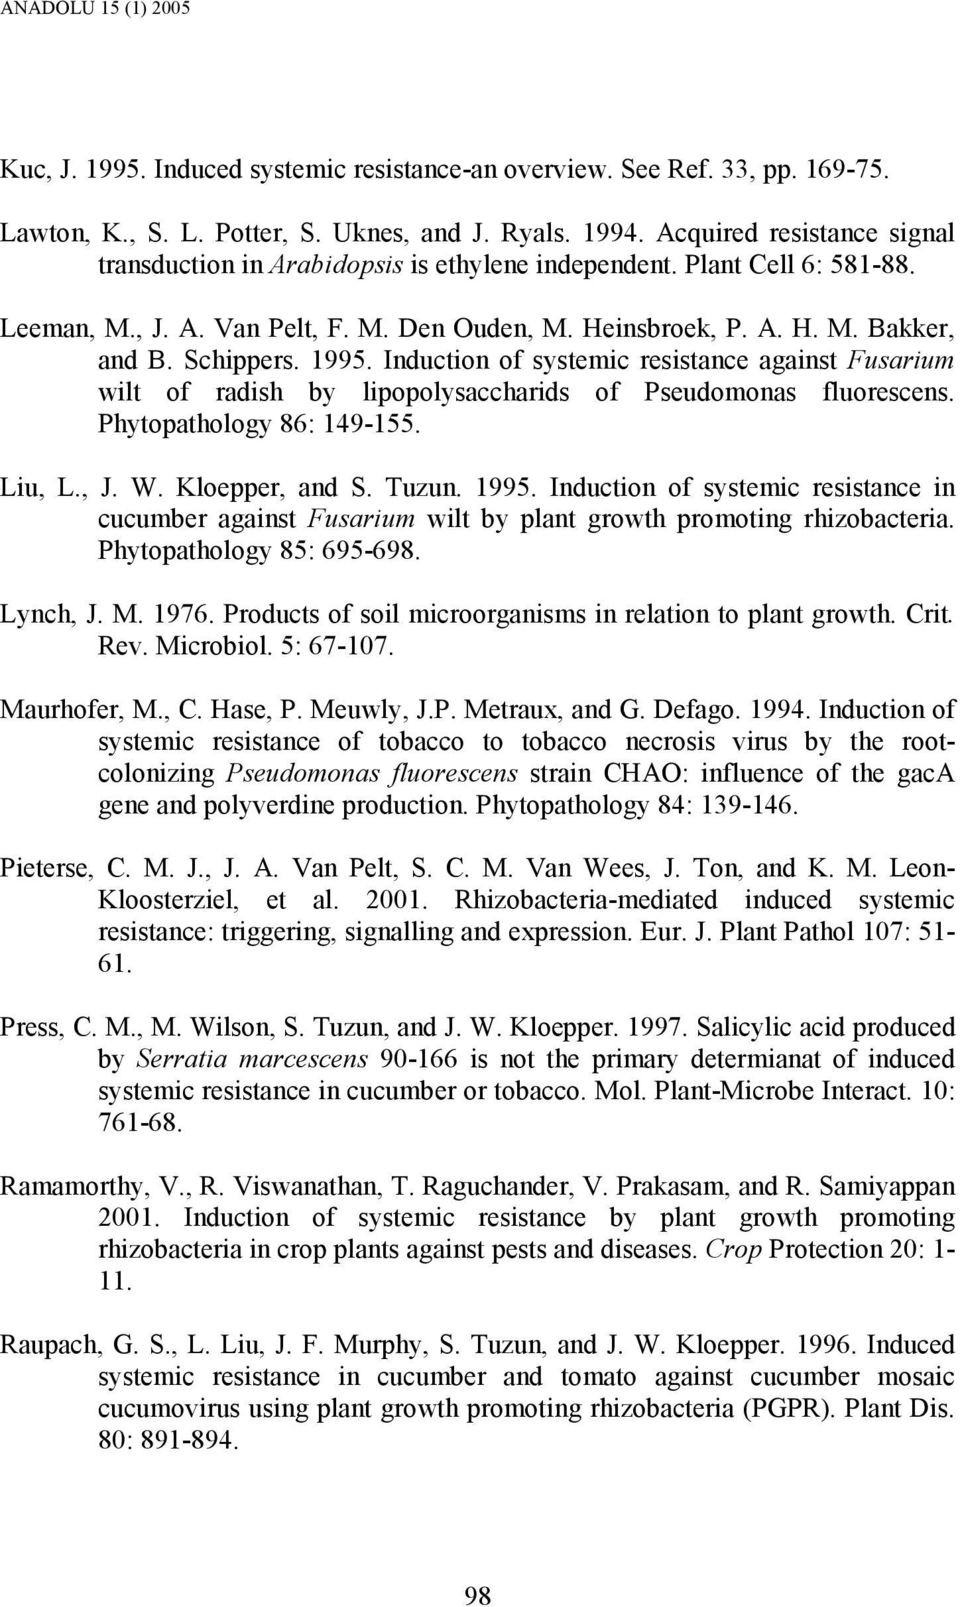 1995. Induction of systemic resistance against Fusarium wilt of radish by lipopolysaccharids of Pseudomonas fluorescens. Phytopathology 86: 149-155. Liu, L., J. W. Kloepper, and S. Tuzun. 1995.